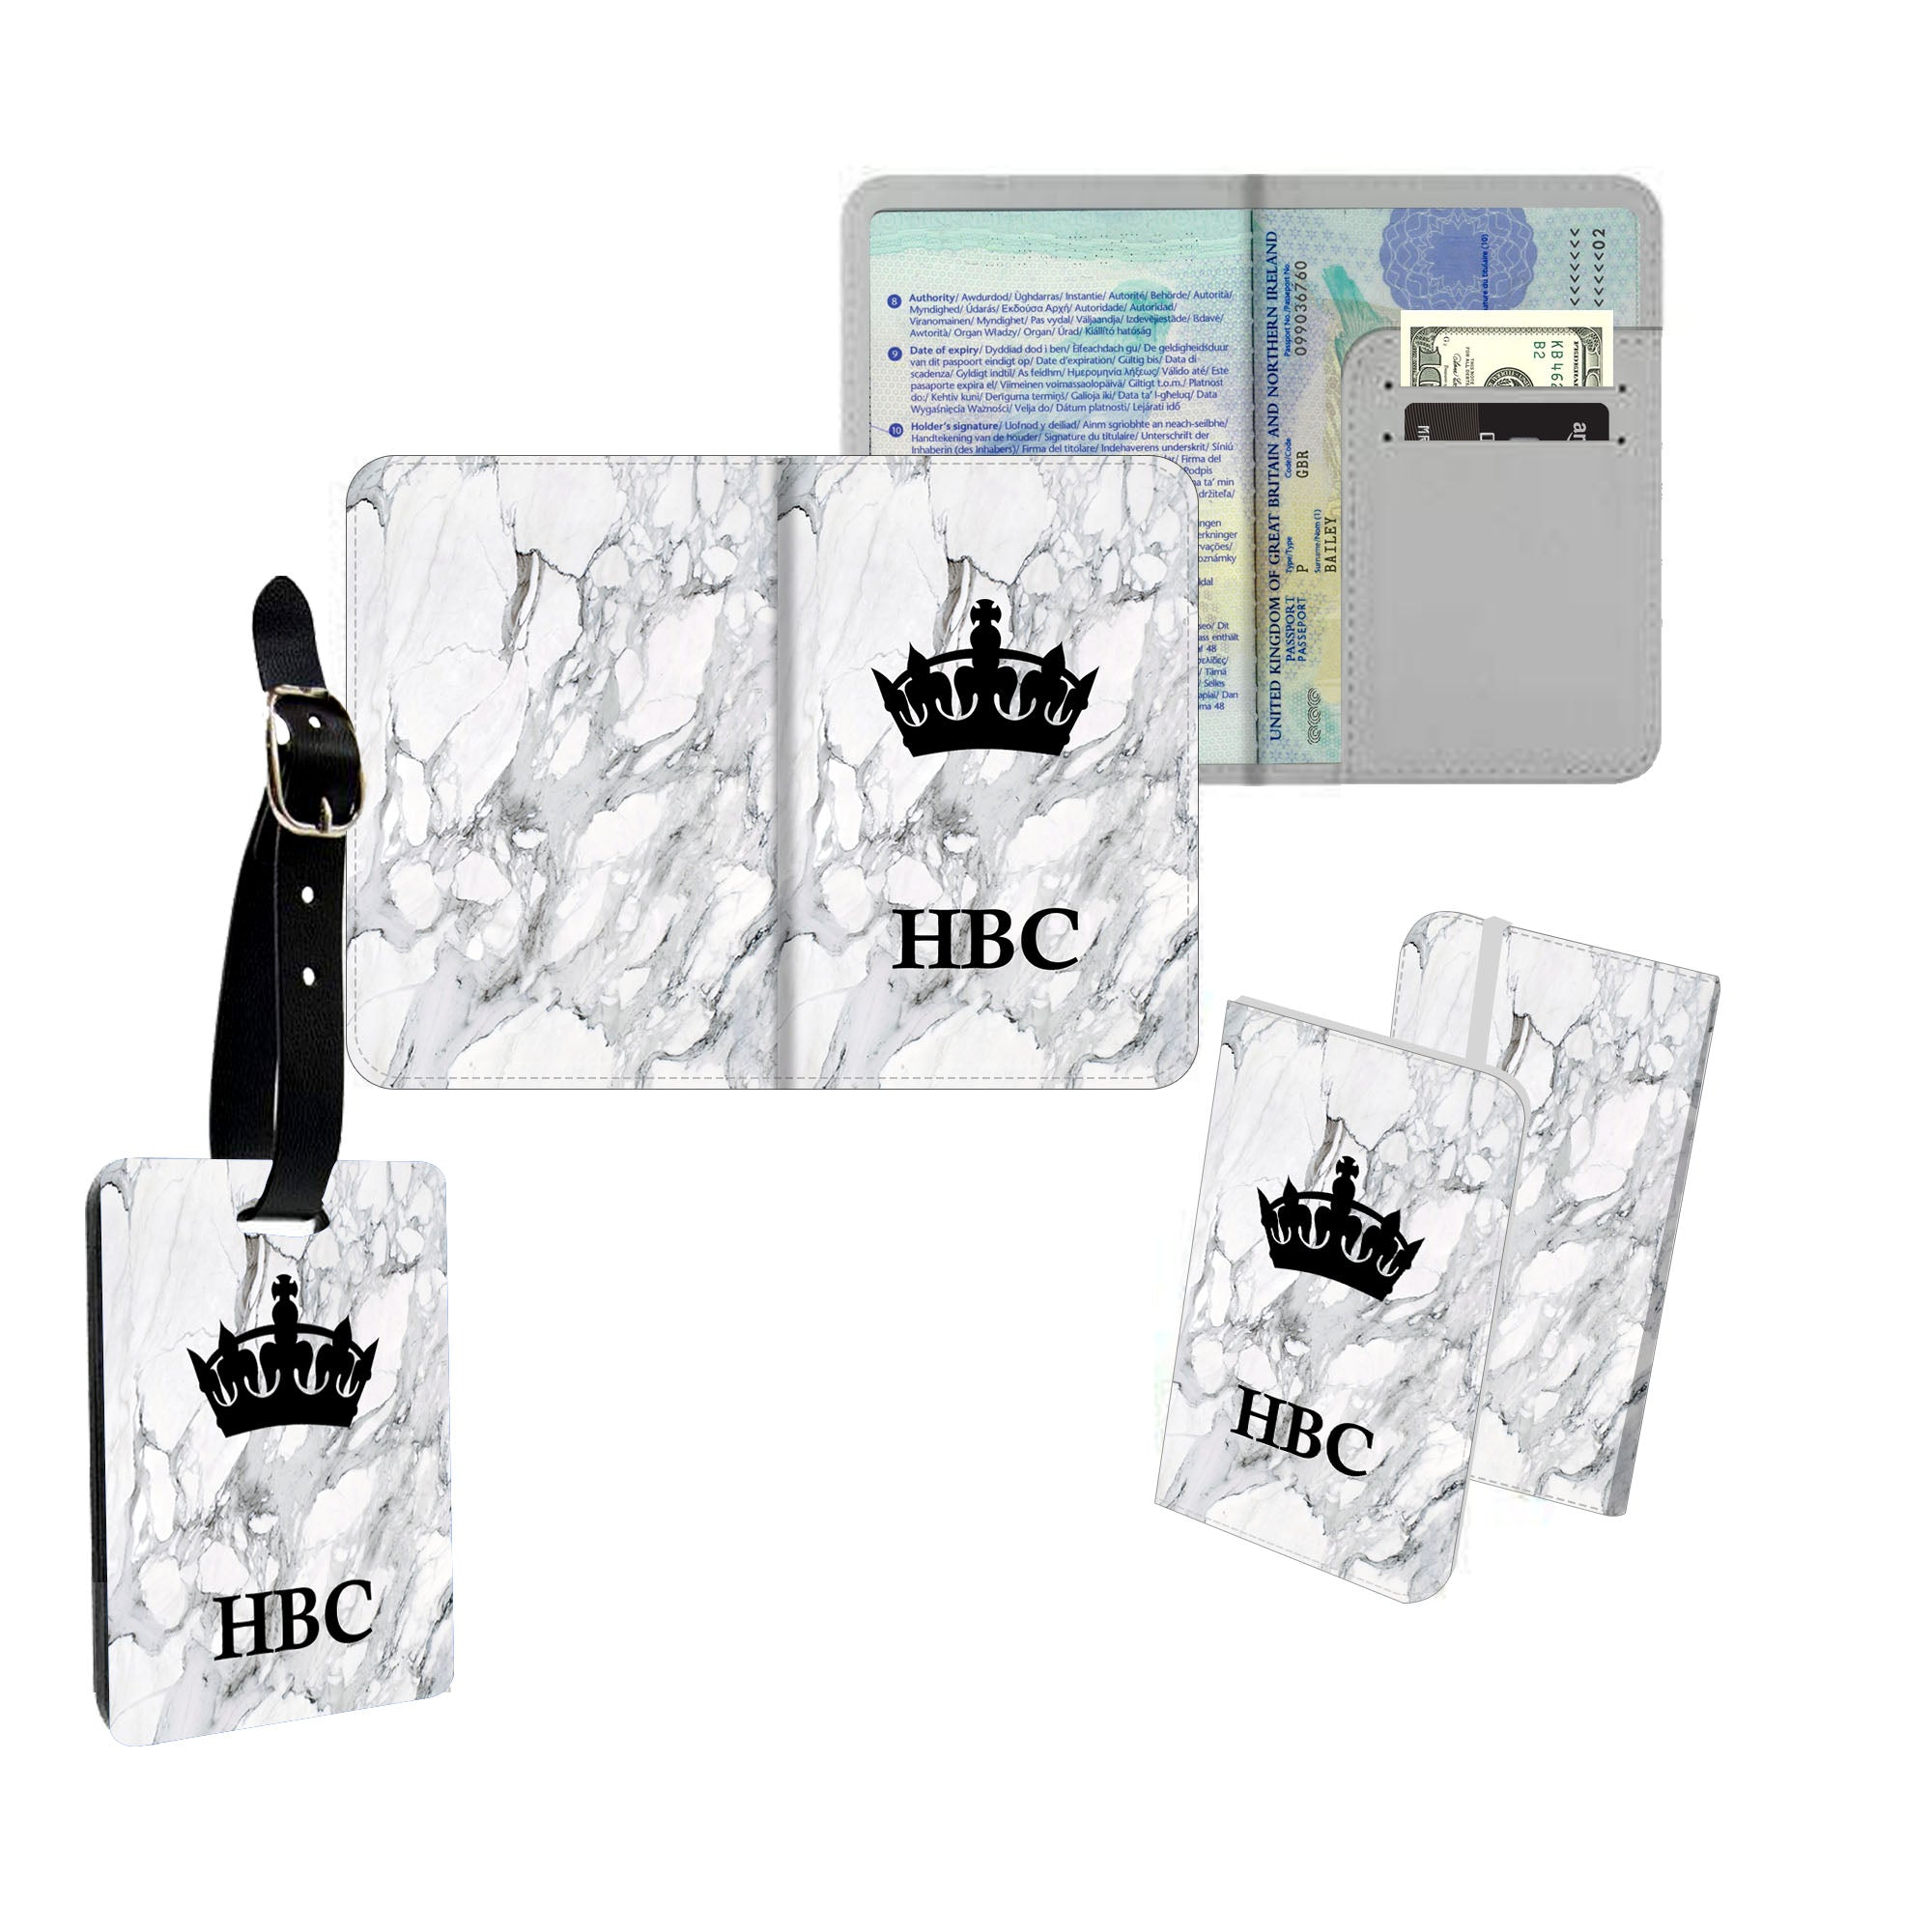 Personalised name passport slim cover holder luggage tag initial king grey marble ai printing